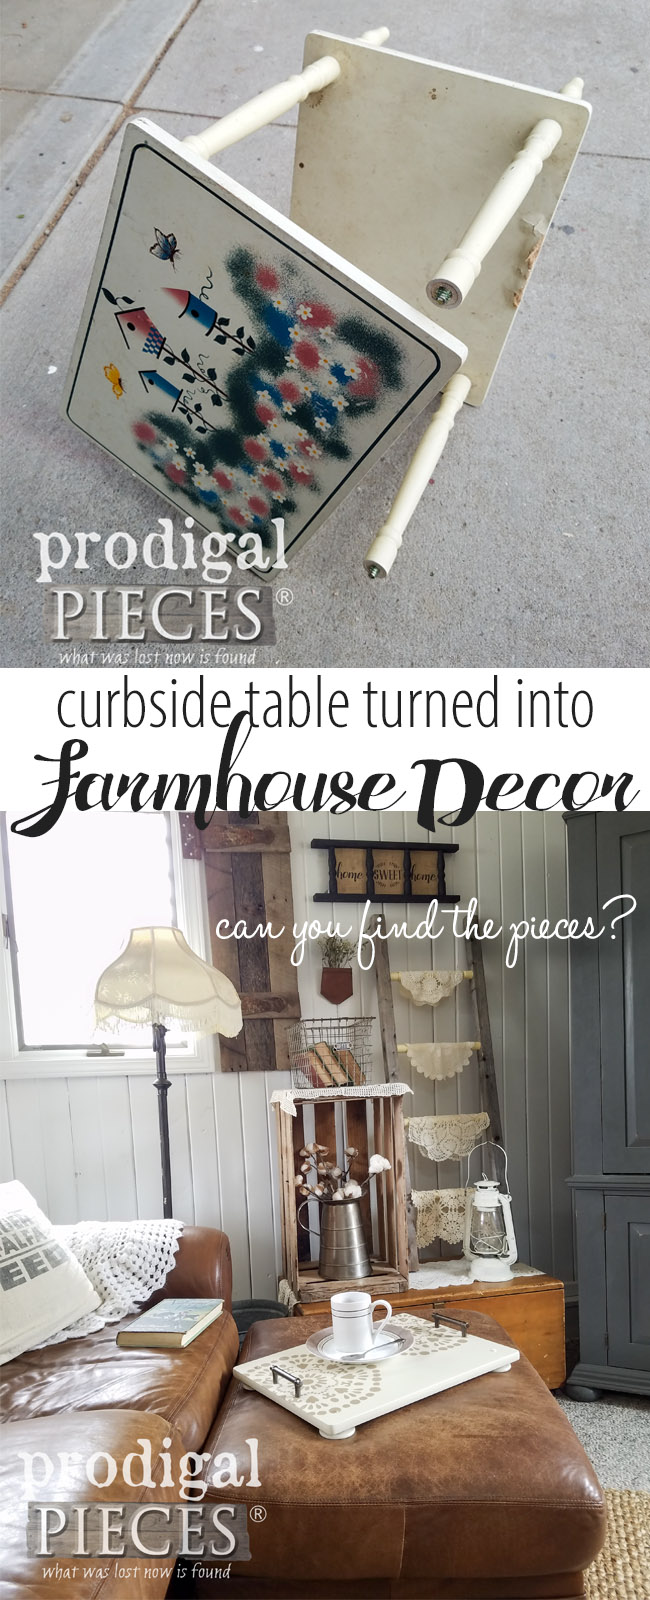 Isn't it amazing how a repurposed side table can be turned into farmhouse decor? Come see how Larissa of Prodigal Pieces and her son get the job done DIY style and share how you can do it too at prodigalpieces.com